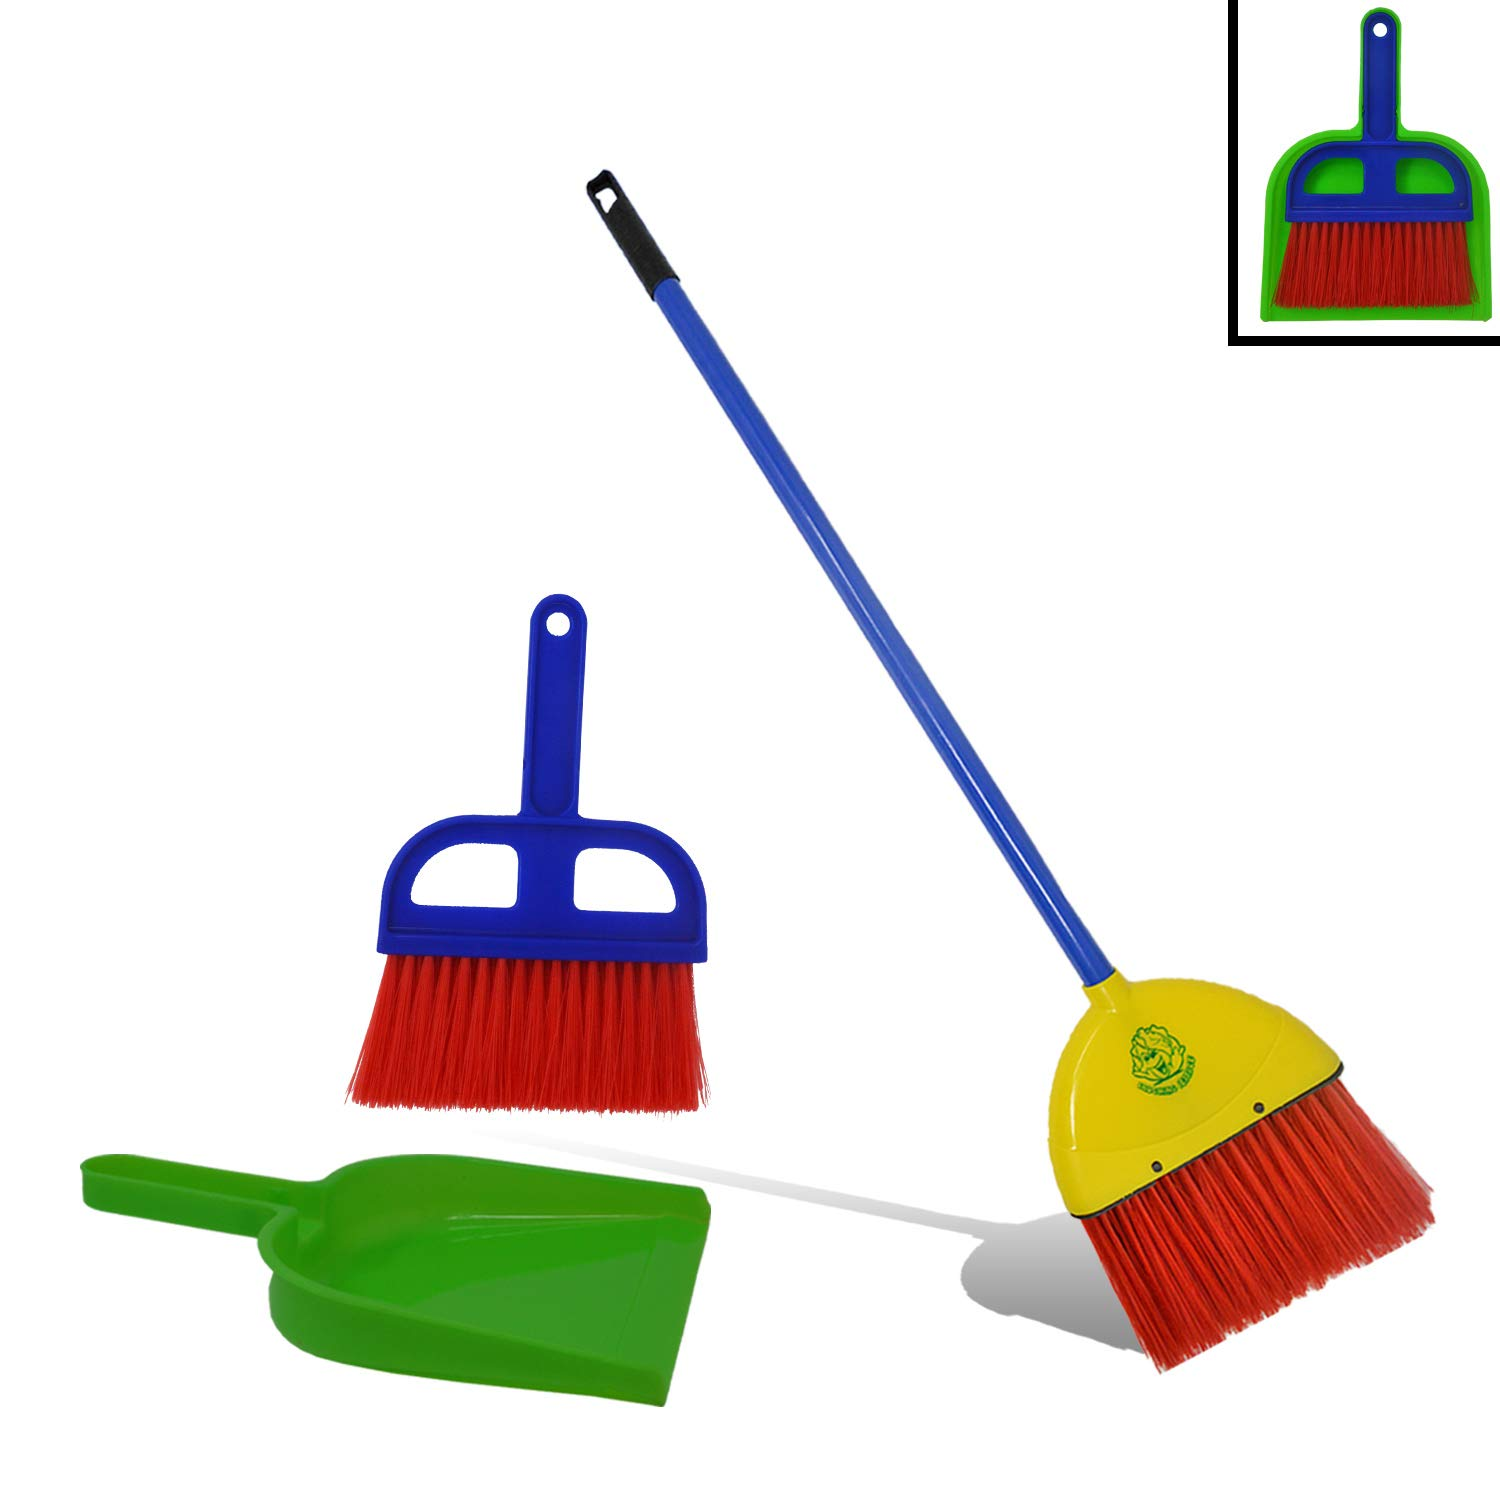 Childrens Broom and Dustpan Set by Laughing Lettuce - Toy Broom, Dustpan, and Mini Sweeper. Real Working broom. Mini Sweeper Clicks into Dustpan for Easy Storage. True Montessori Cleaning Set